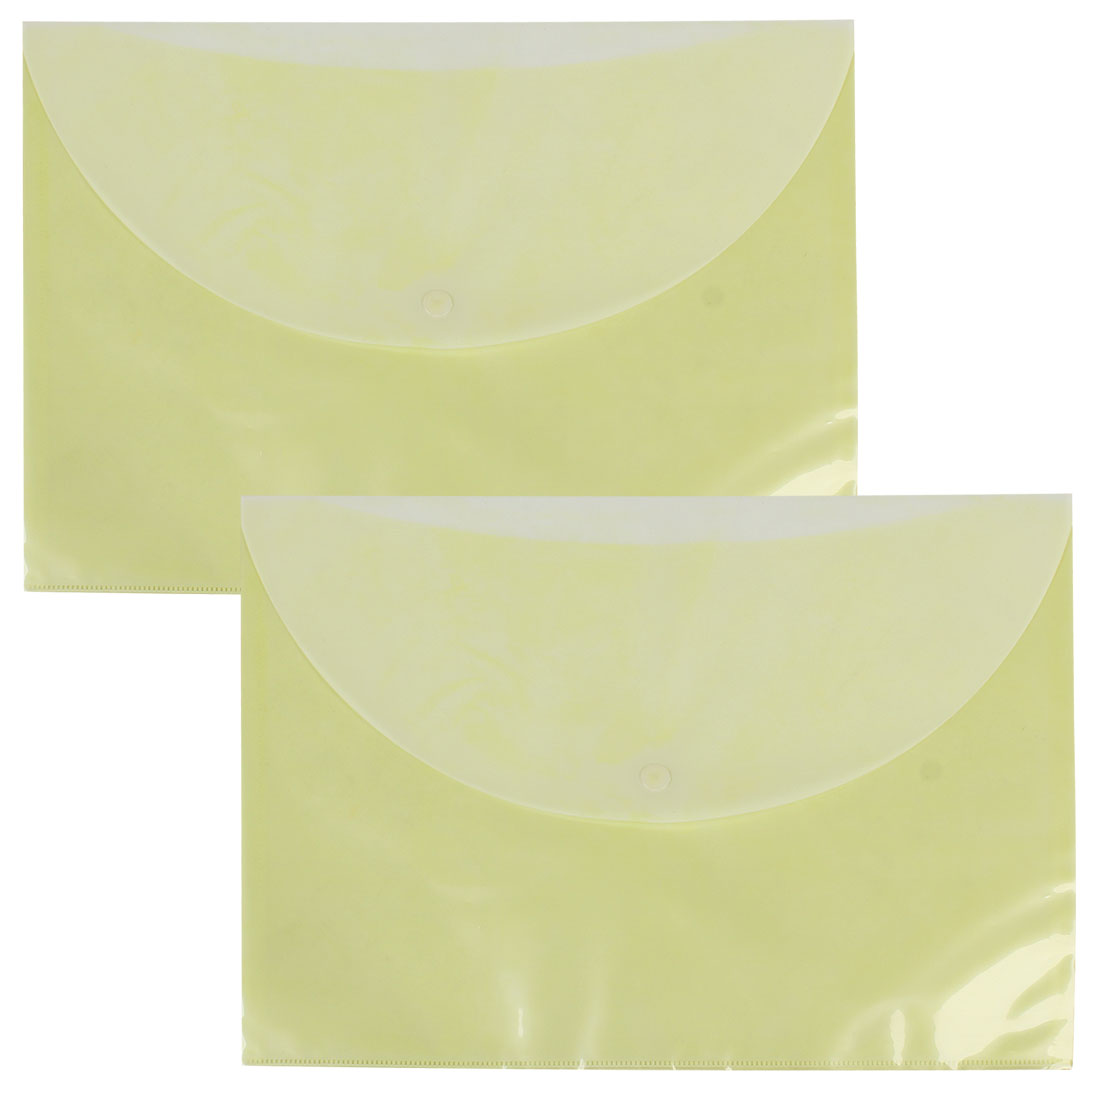 2 Pcs Yellow White Plastic A4 Size Paper File Document Holder